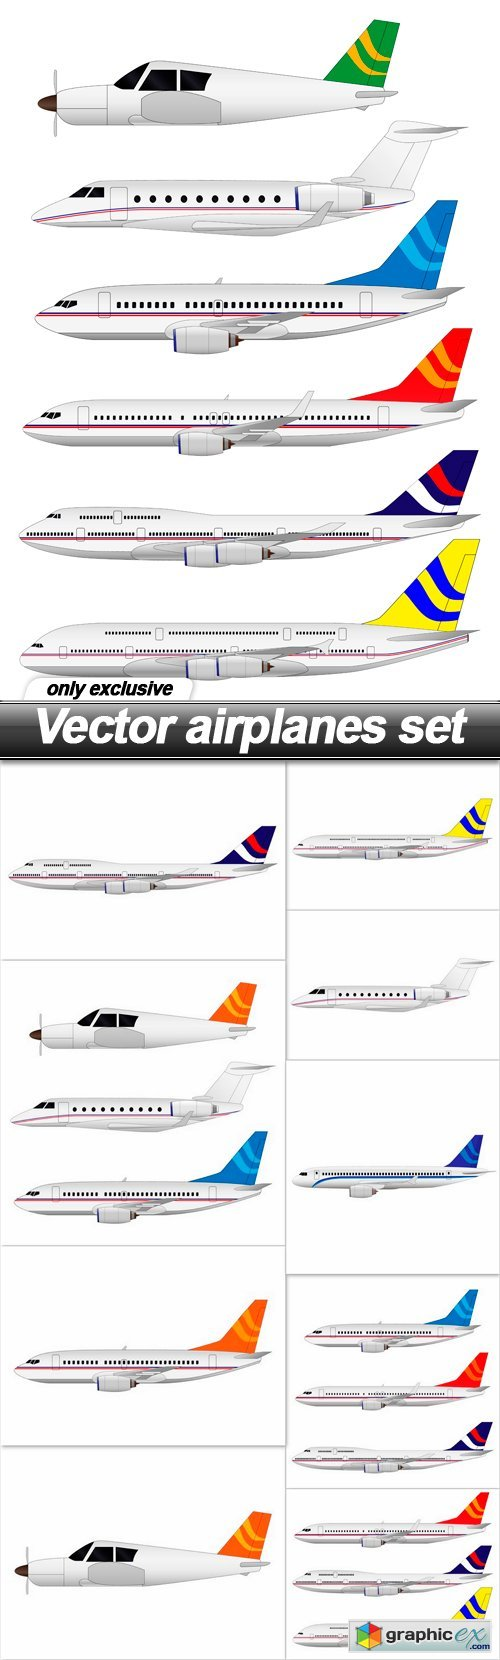 airplanes set - 10 EPS